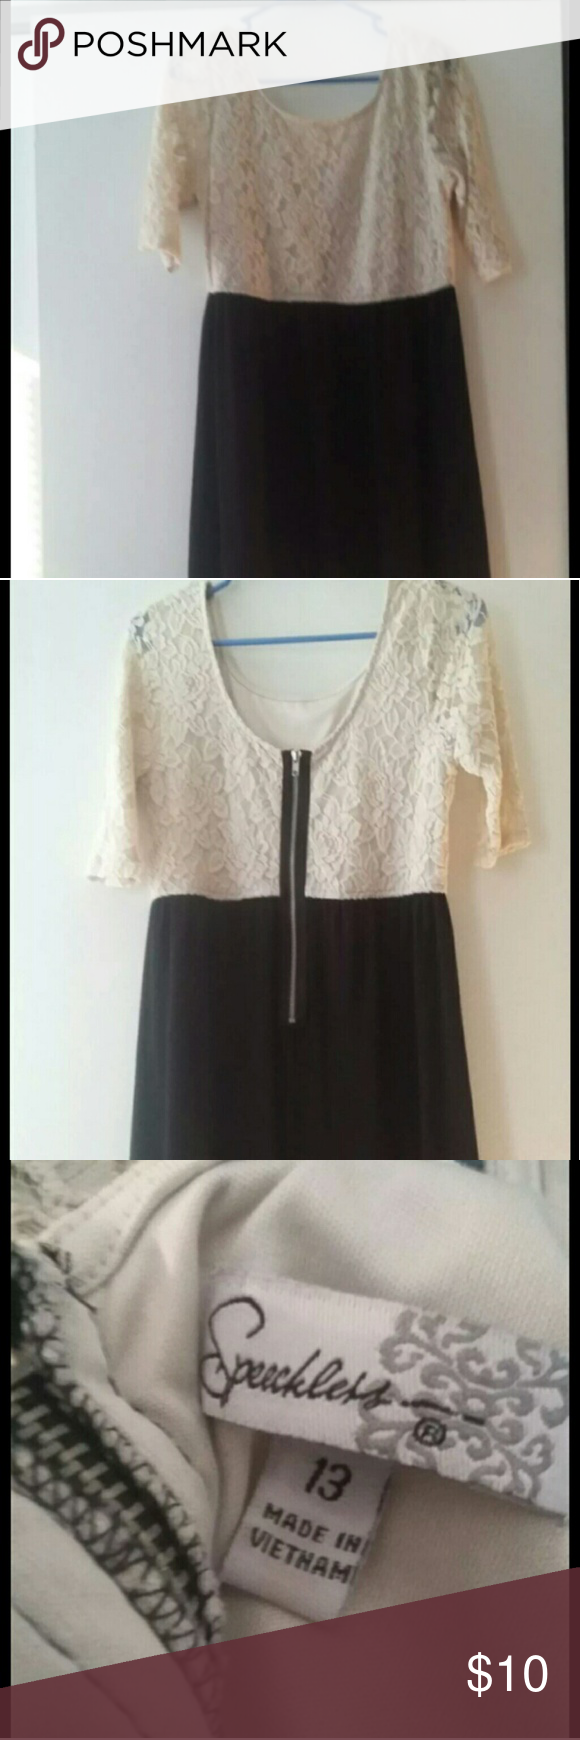 Black and White Dress This is in great condition! This item come from a smoke free home. This is a size 13. Dresses